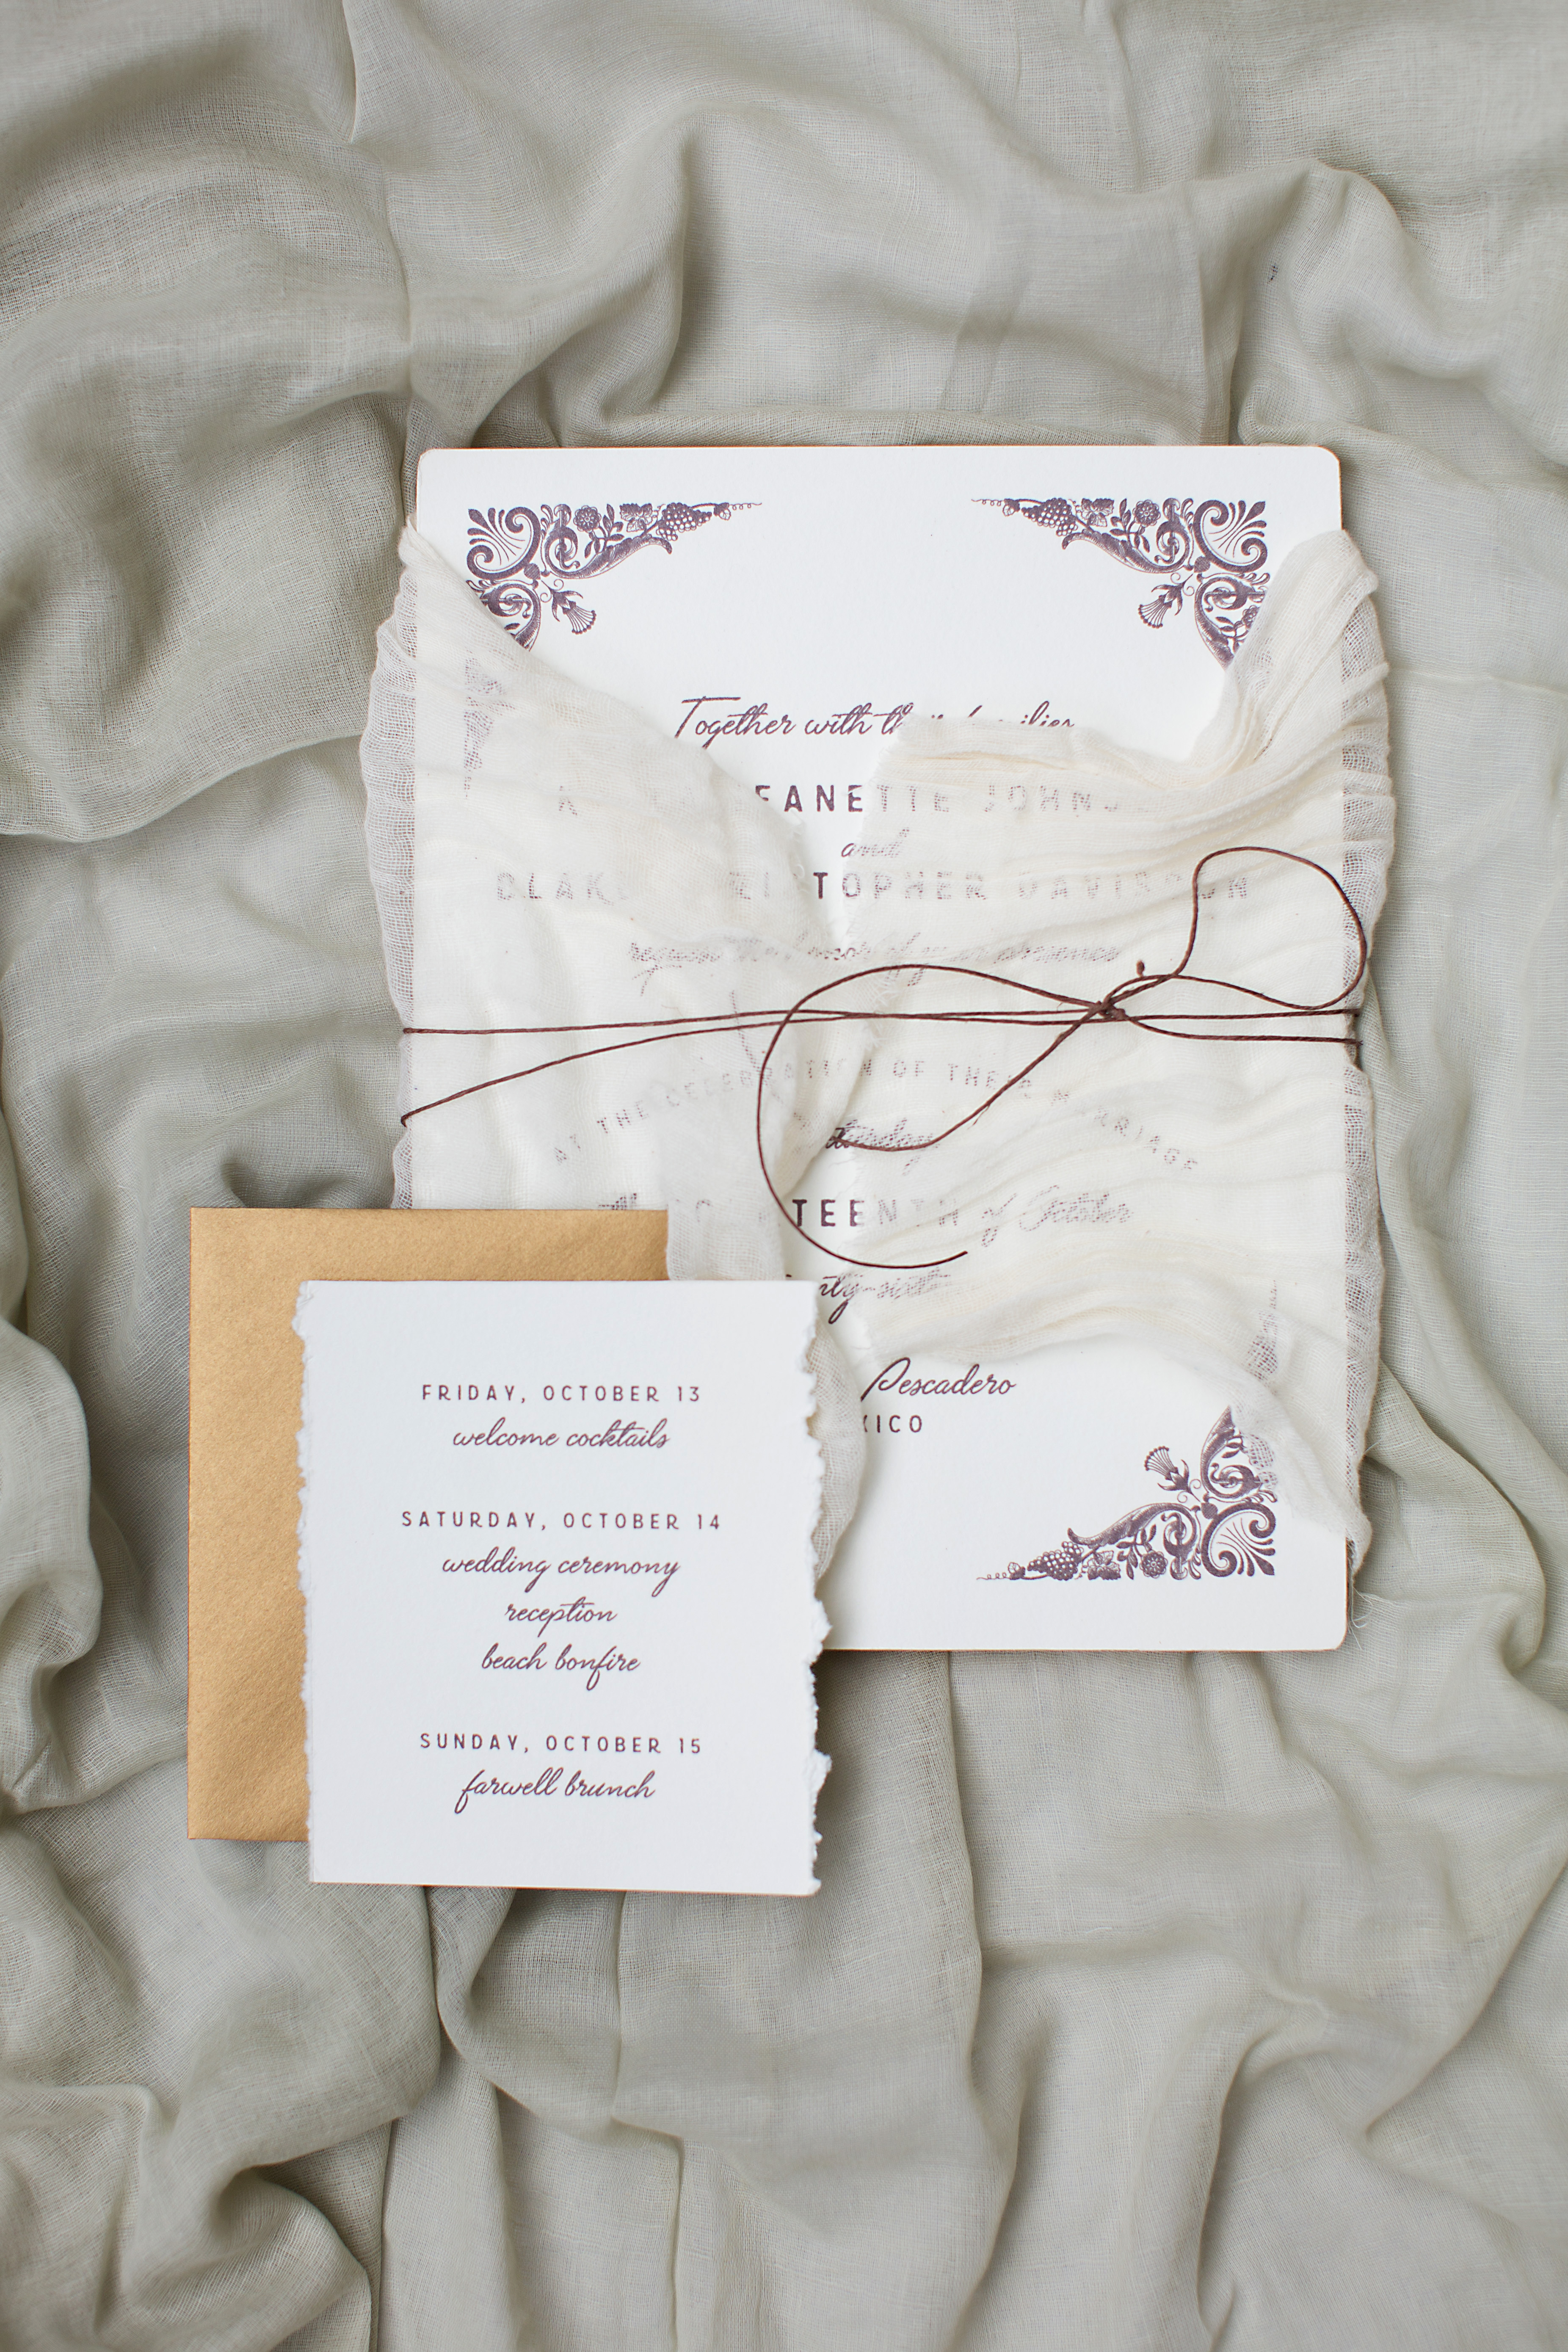 Oversized Invitation wrapped in raw linen with leather twine and hand deckled informational card